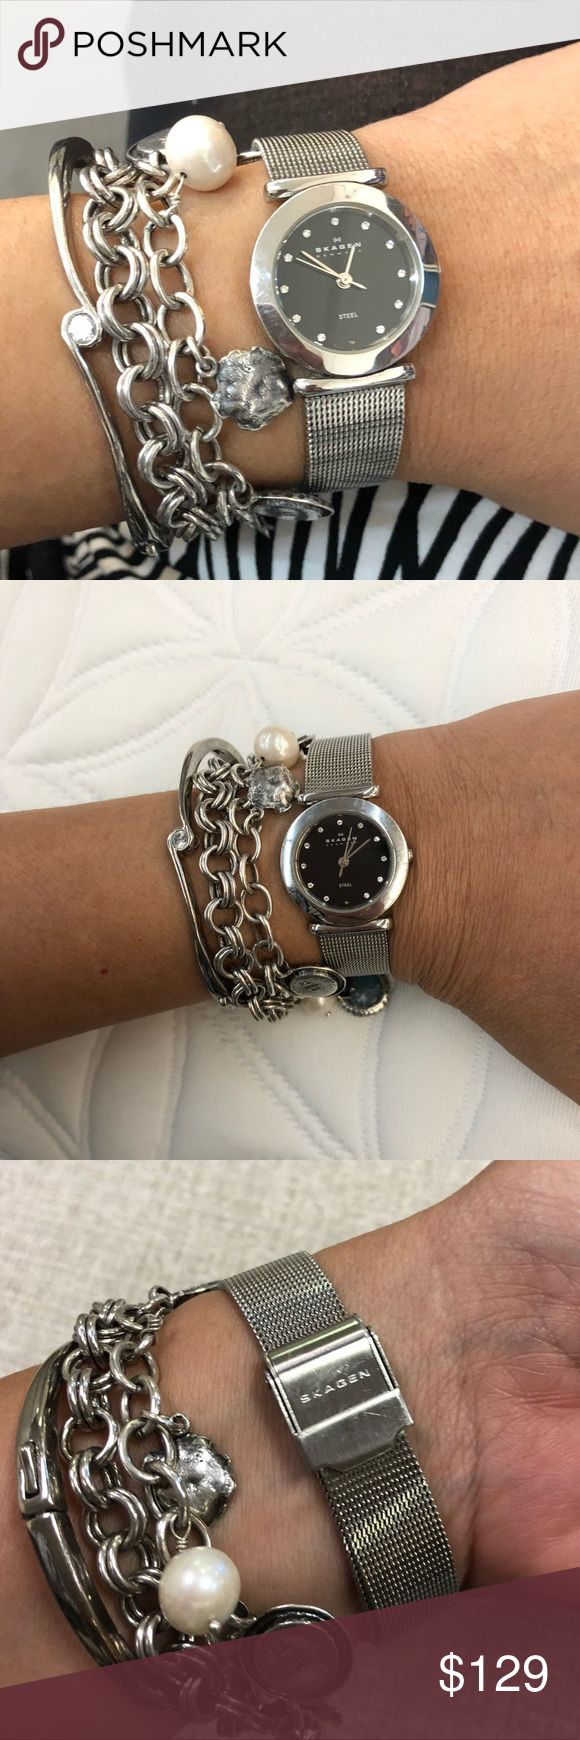 Skagen diamond in stainless steel mesh watch Excellent condition.  No scratches on crystal . Scratches on the back only.  No box no papers final sale trade value higher Skagen Accessories Watches